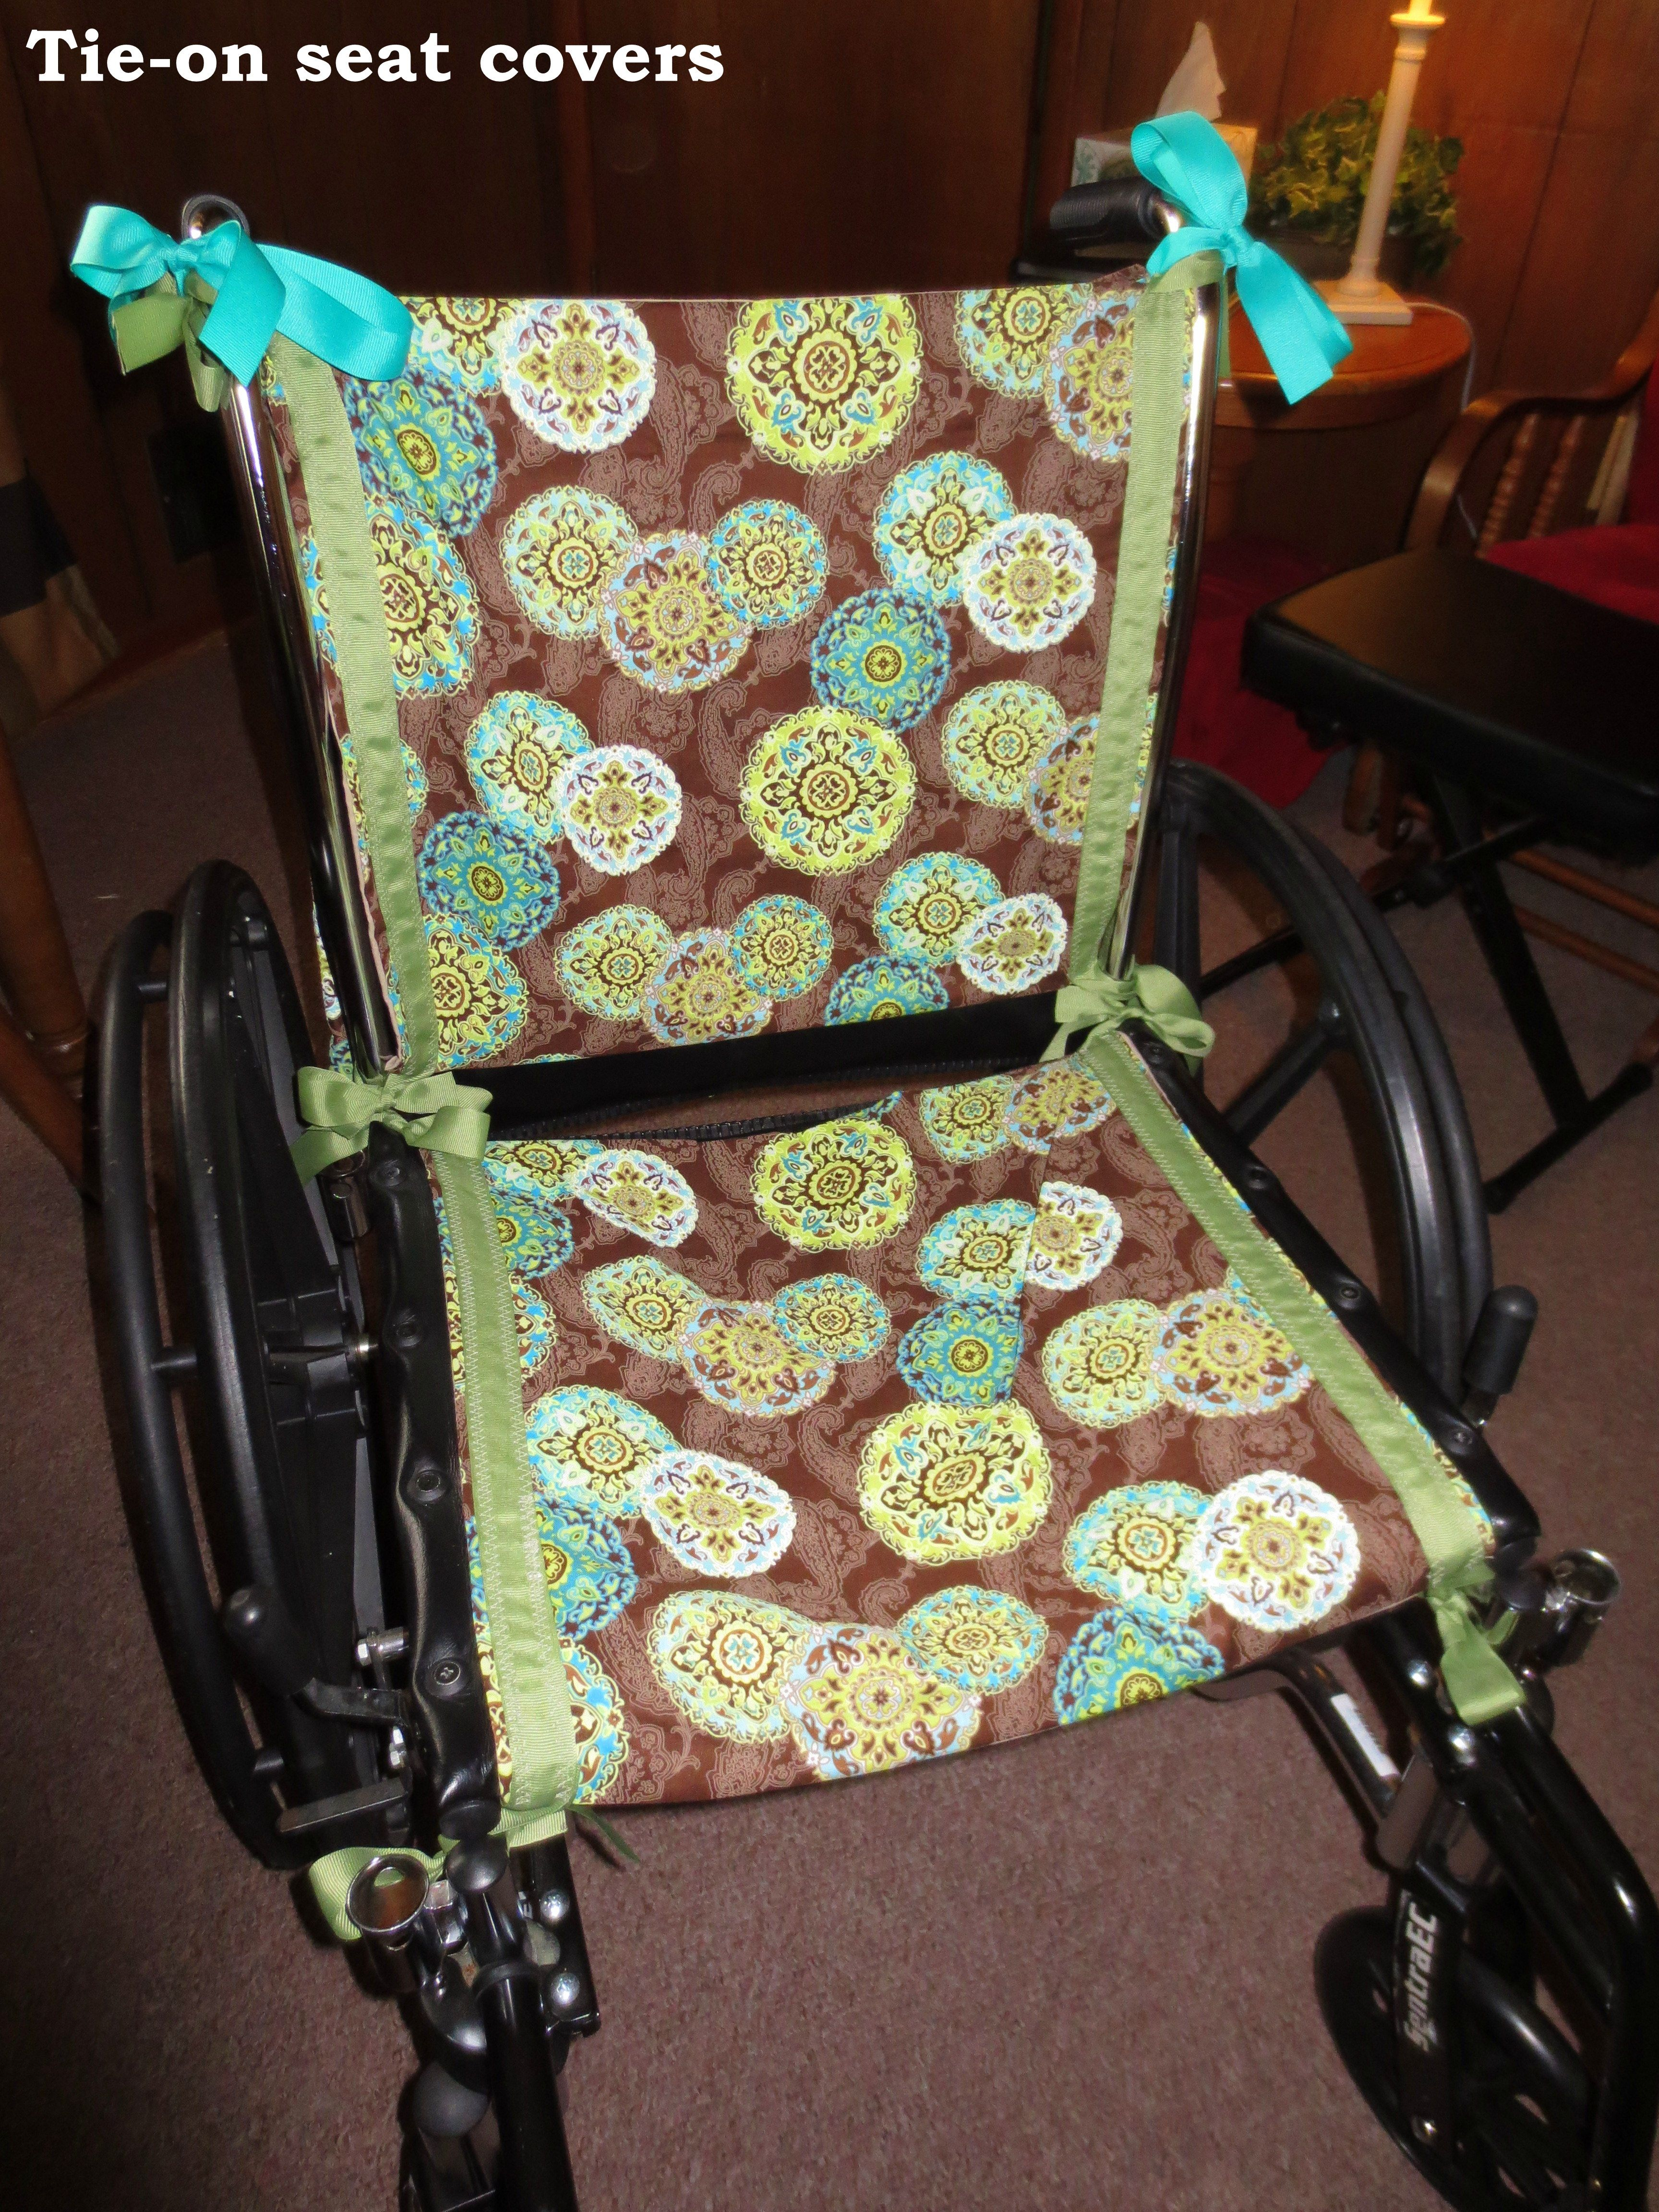 DIY tieon seat cover for wheelchair the link doesnt work but – Wheel Chair Covers